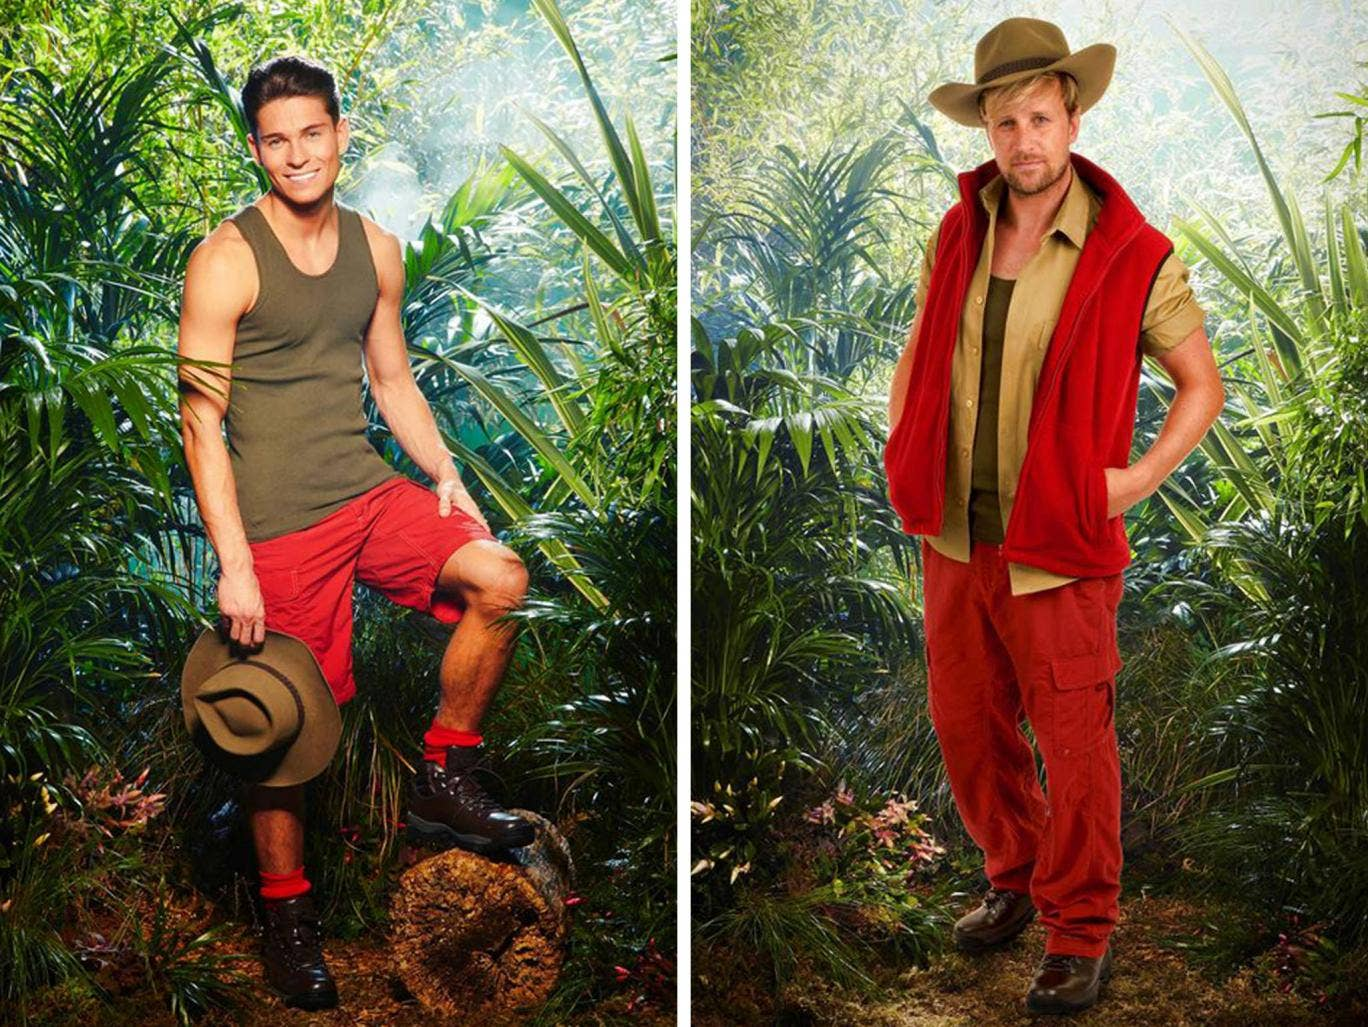 Westlife's Kian Egan has emerged as an early rival for Joey Essex in the battle for the I'm A Celebrity crown